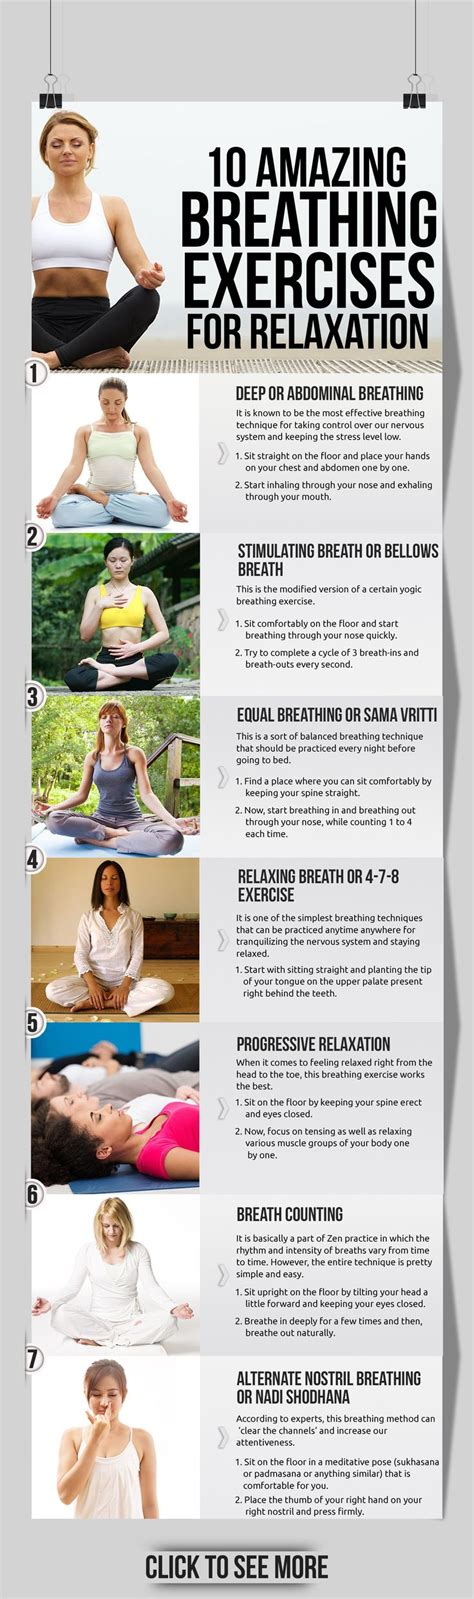 Breathe In Breathe Out Relaxation Techniques To Help De Stress Your Mind by Best 25 Relaxation Techniques Ideas On